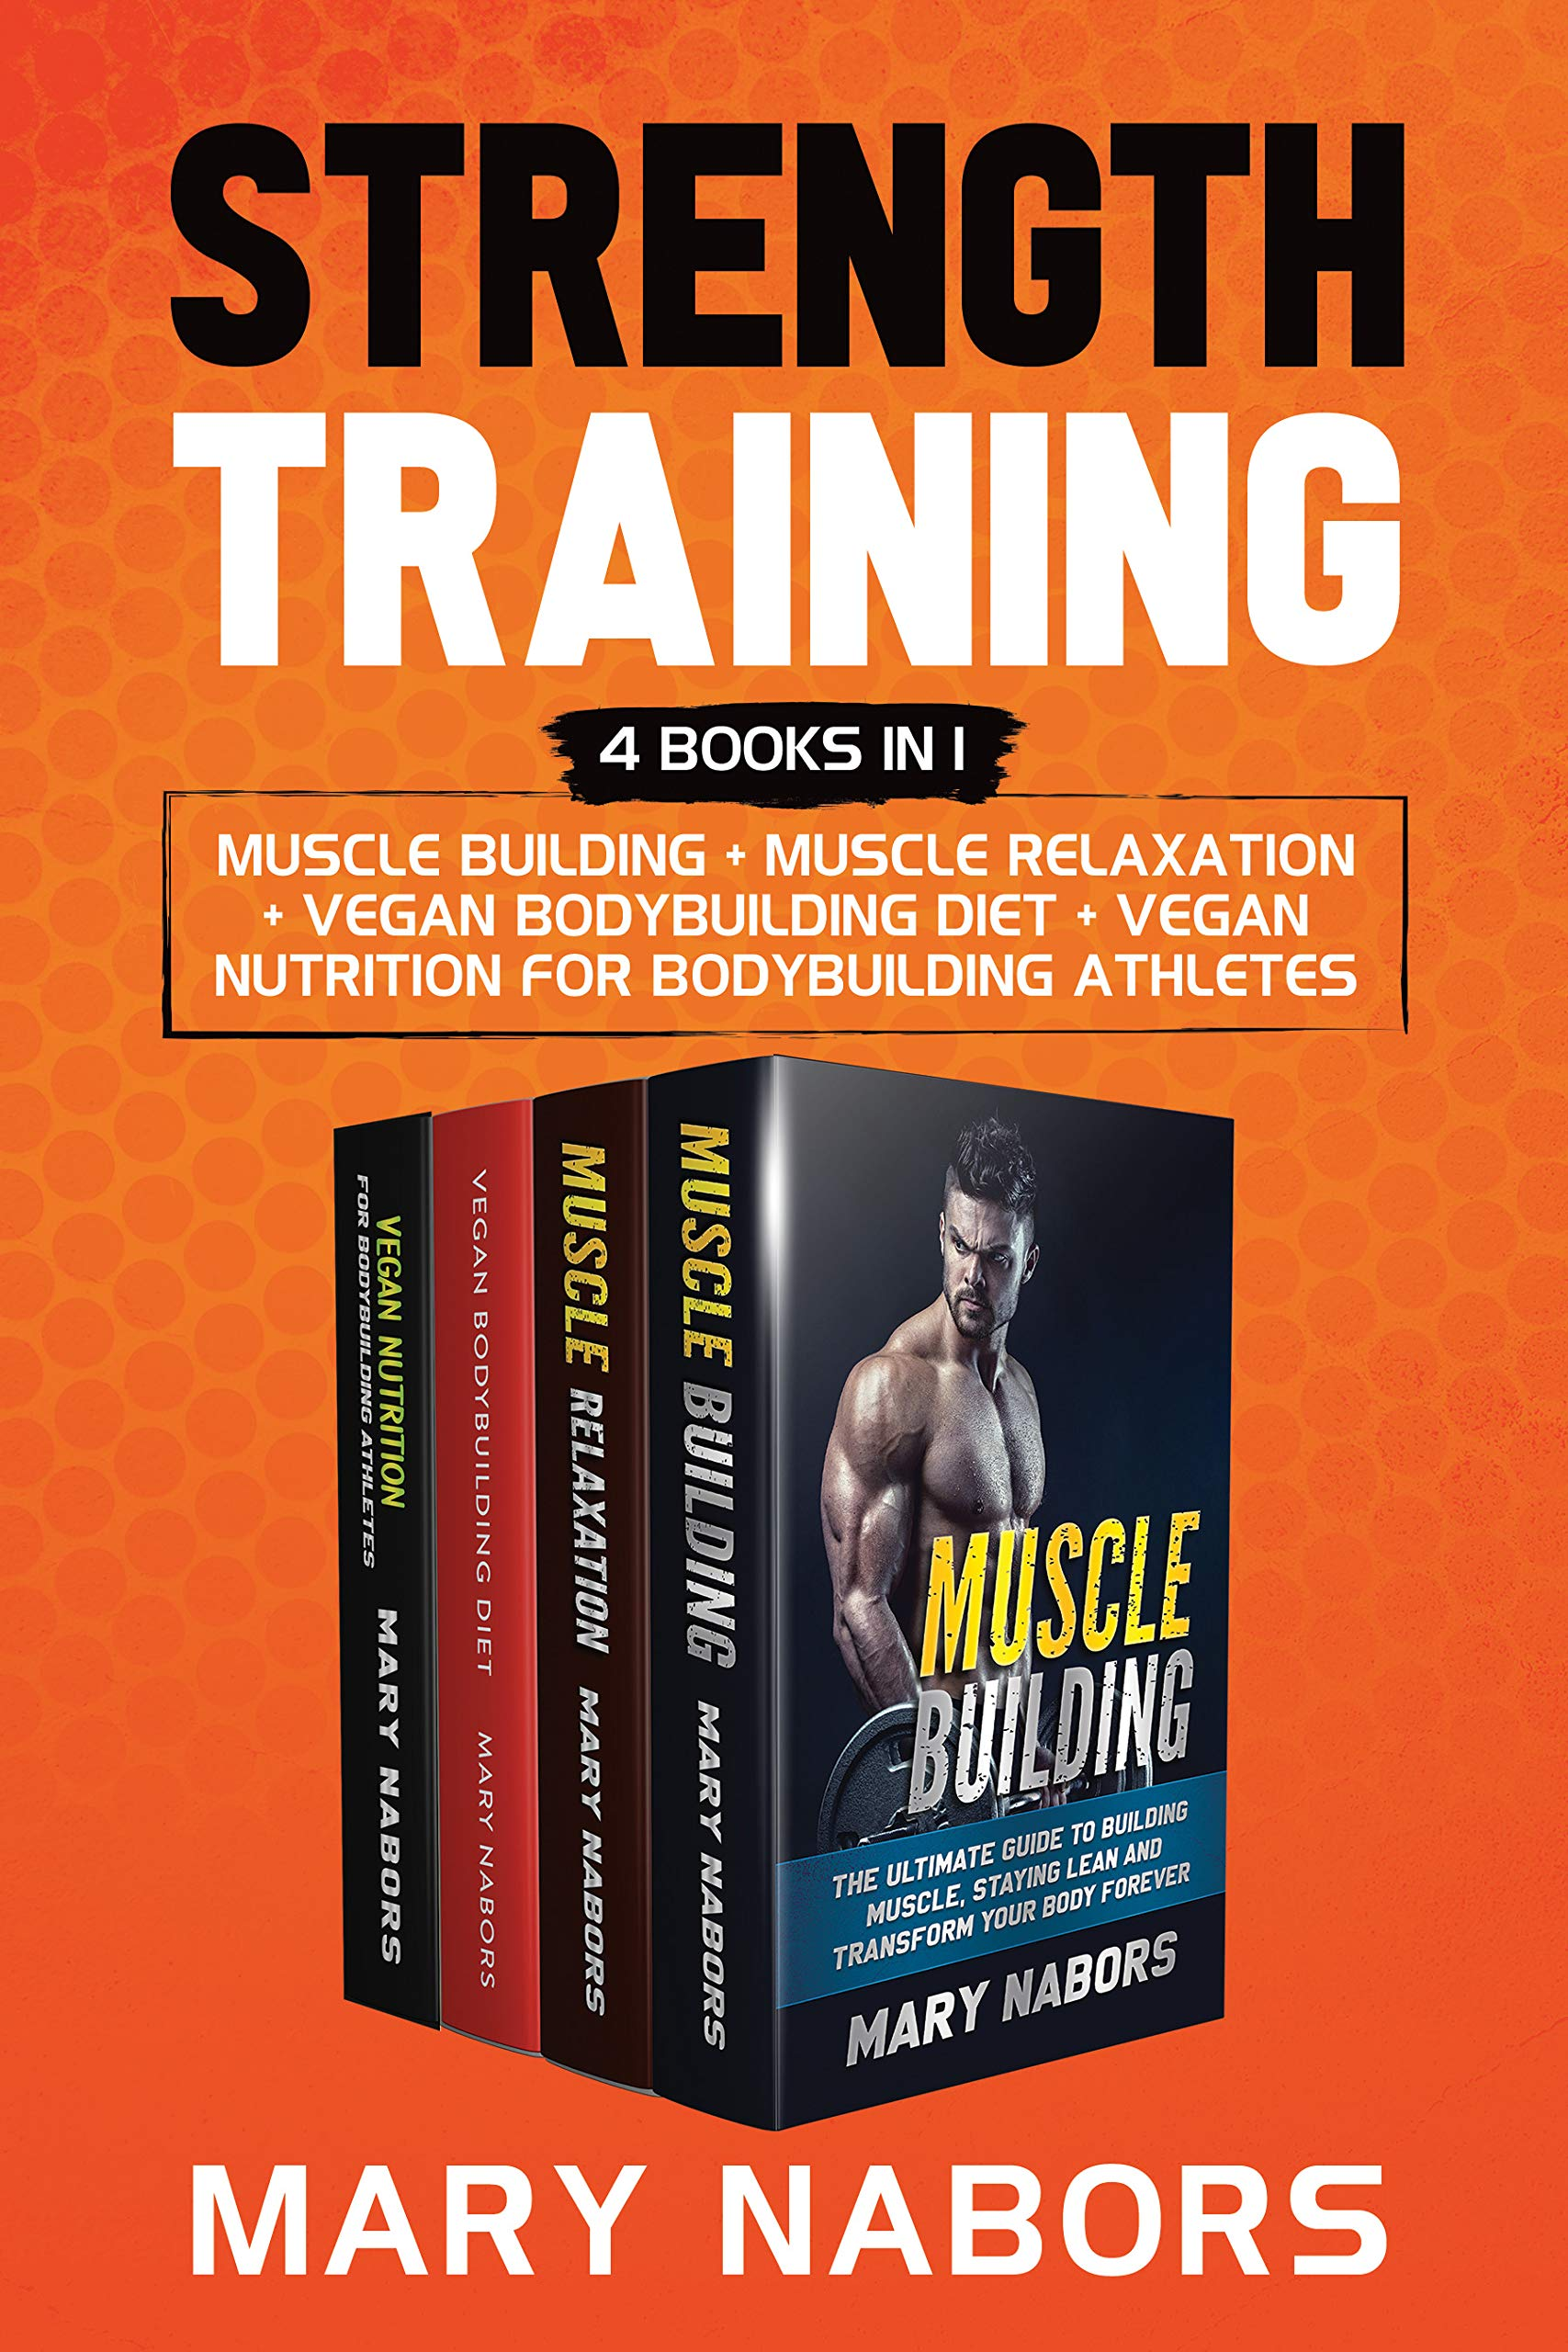 Strength Training (4 Books In 1): Muscle Building + Muscle Relaxation + Vegan Bodybuilding Diet + Vegan Nutrition For Body...